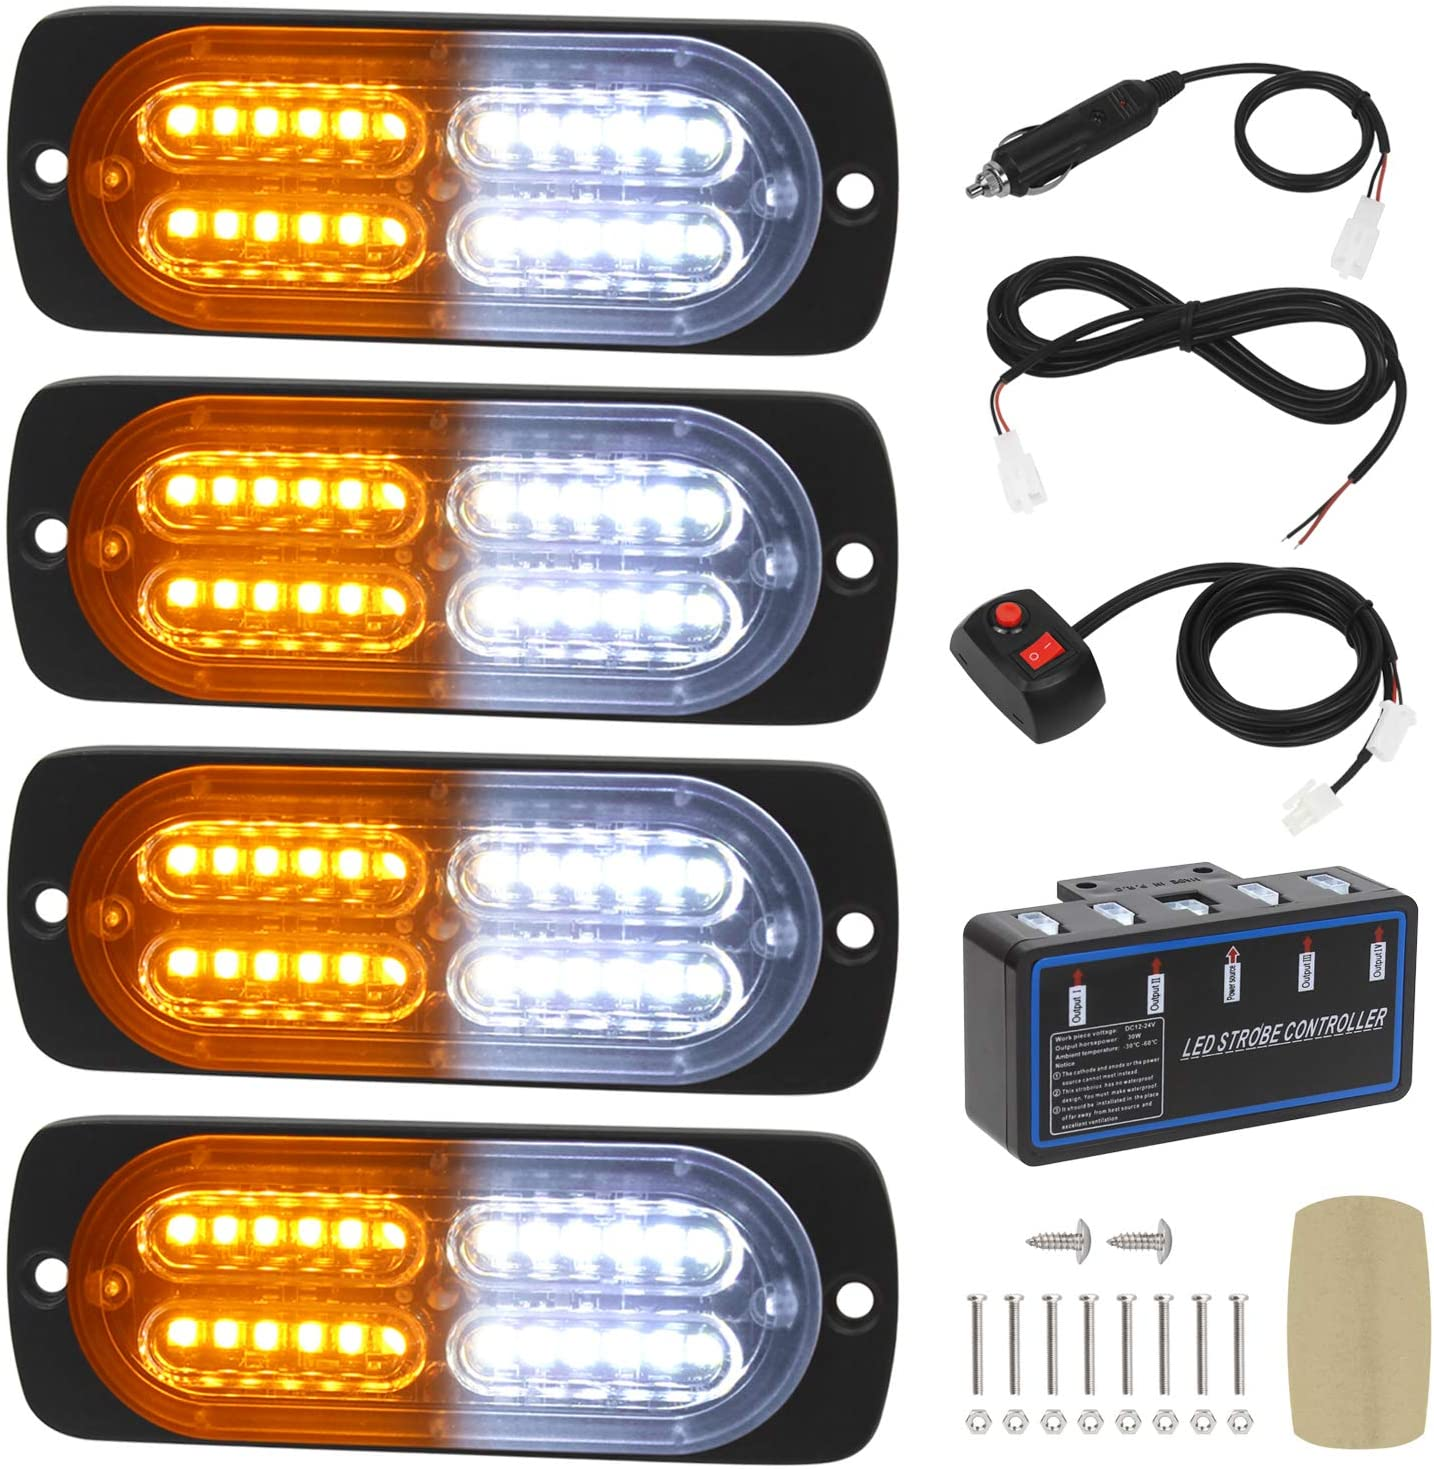 Linkitom 4pcs Ultra Slim Sync Feature 24-LED Car Surface M Truck Genuine Spring new work